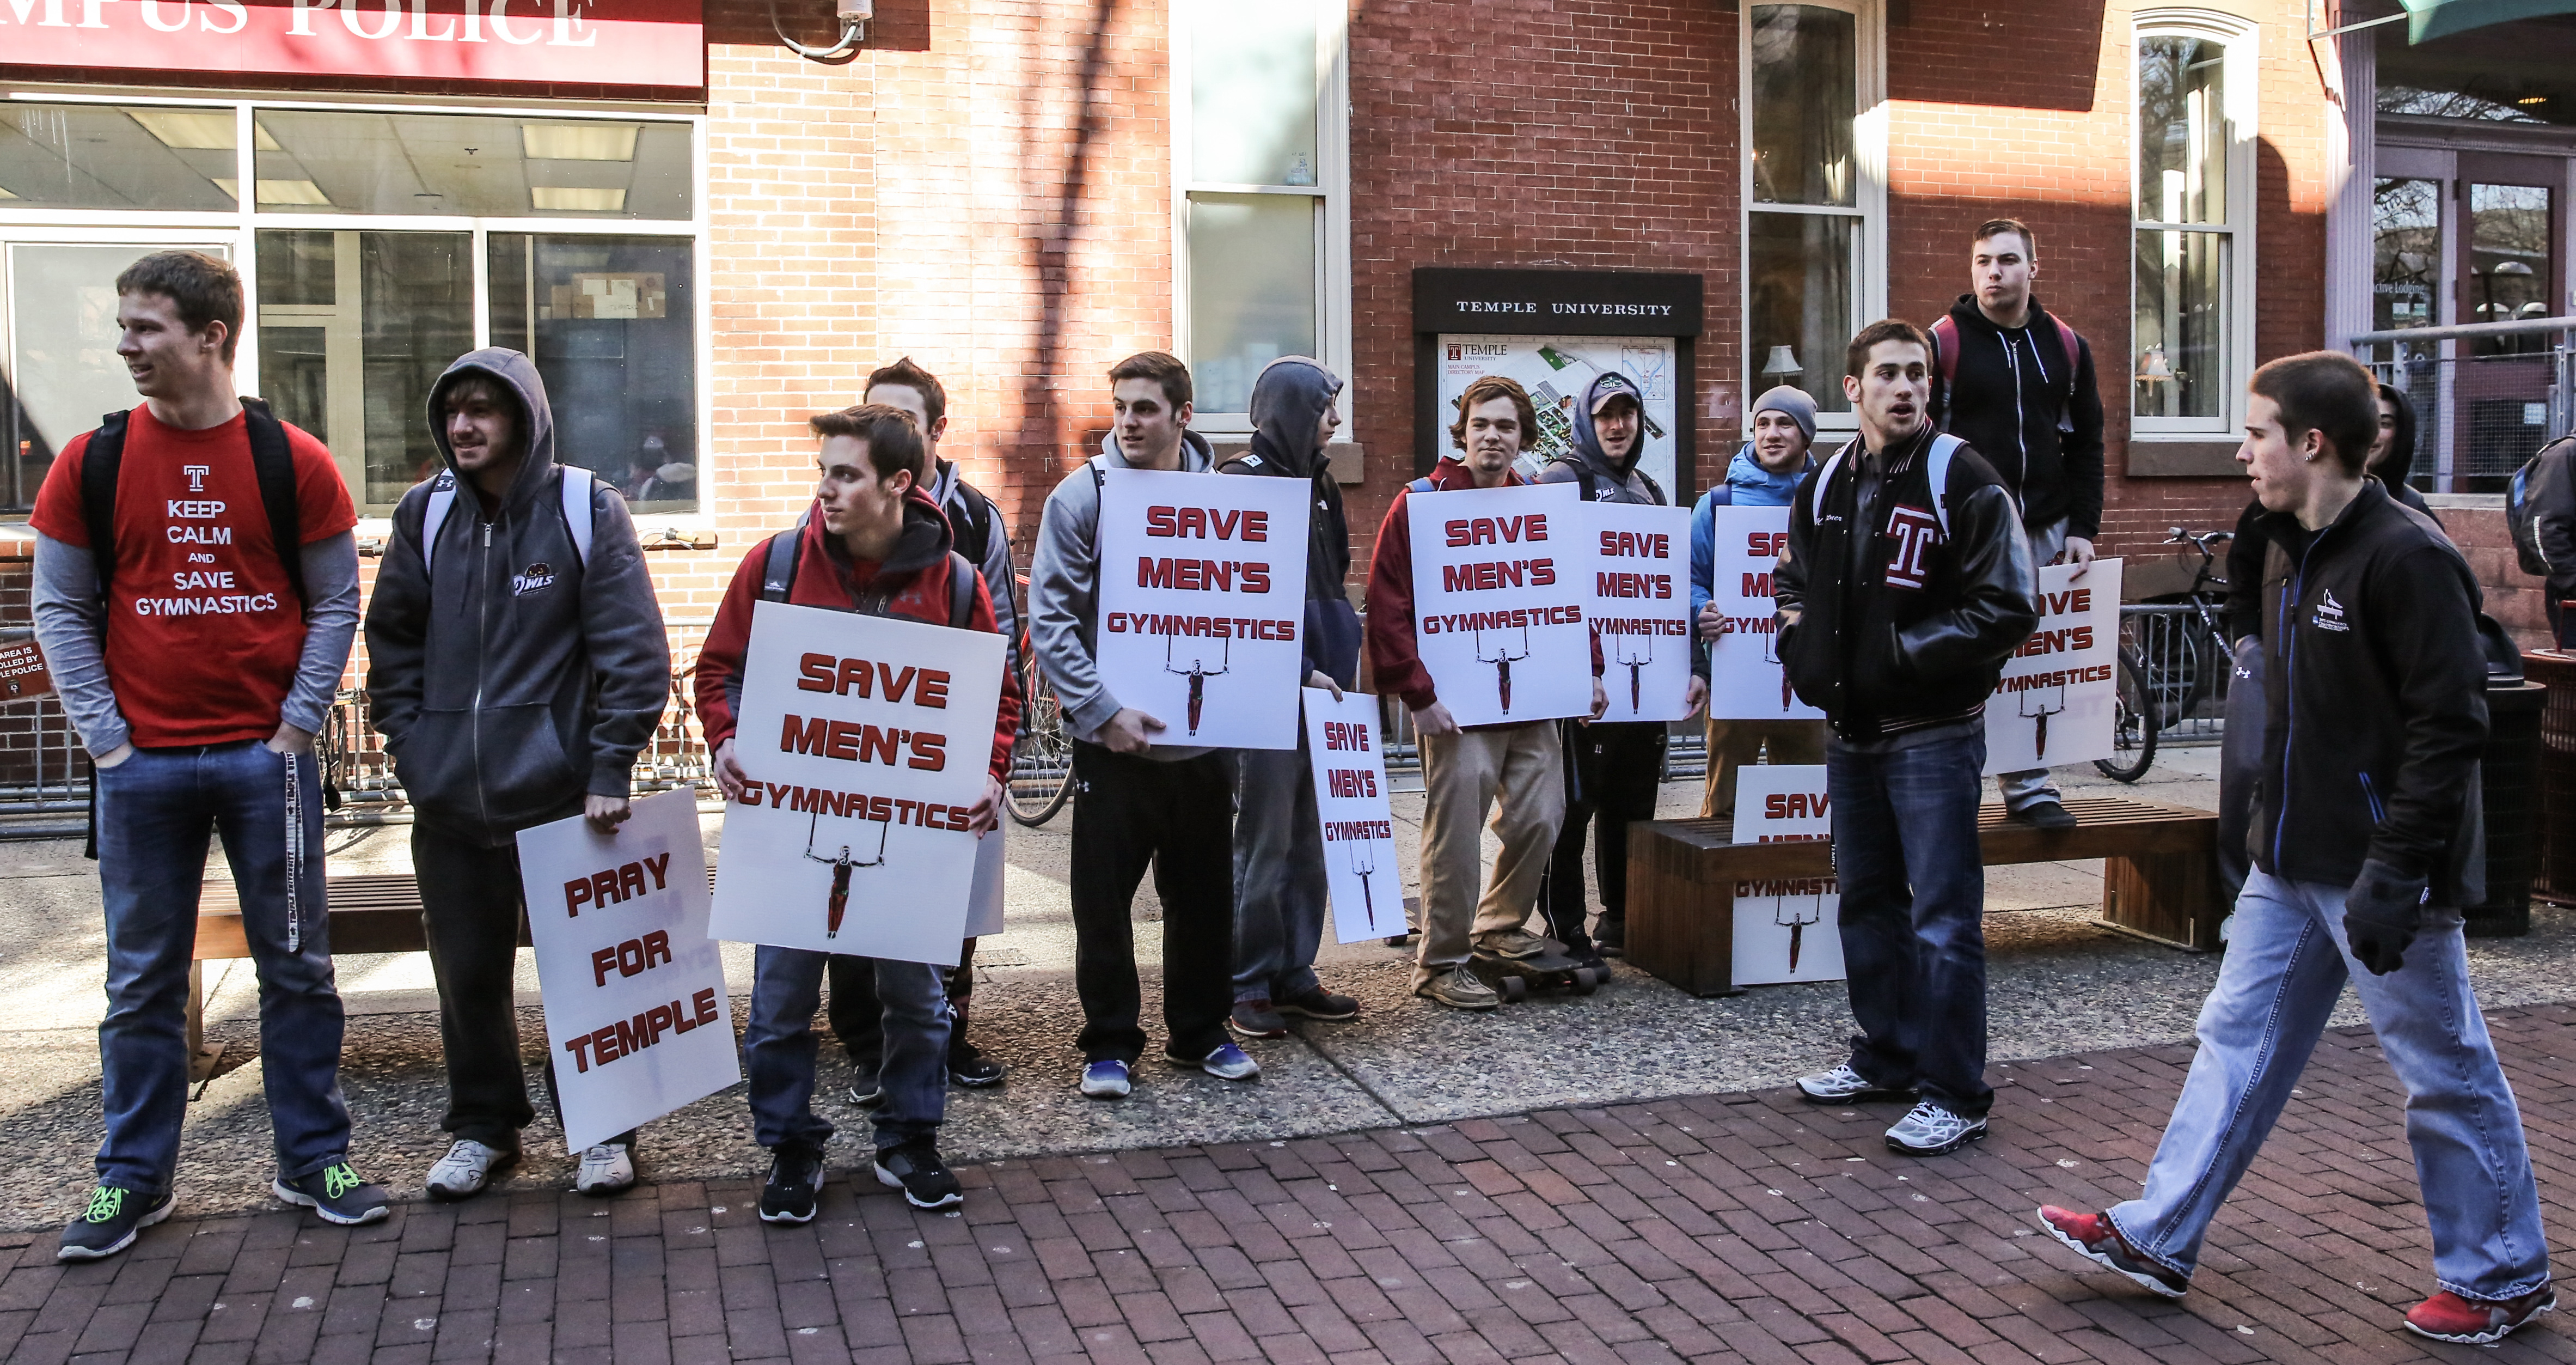 Members of the men's gymnastics team rallied outside Sullivan Hall before a Board of Trustees meeting in February. Coaches and student-athletes from each of the cut sports teams spoke at the meeting.